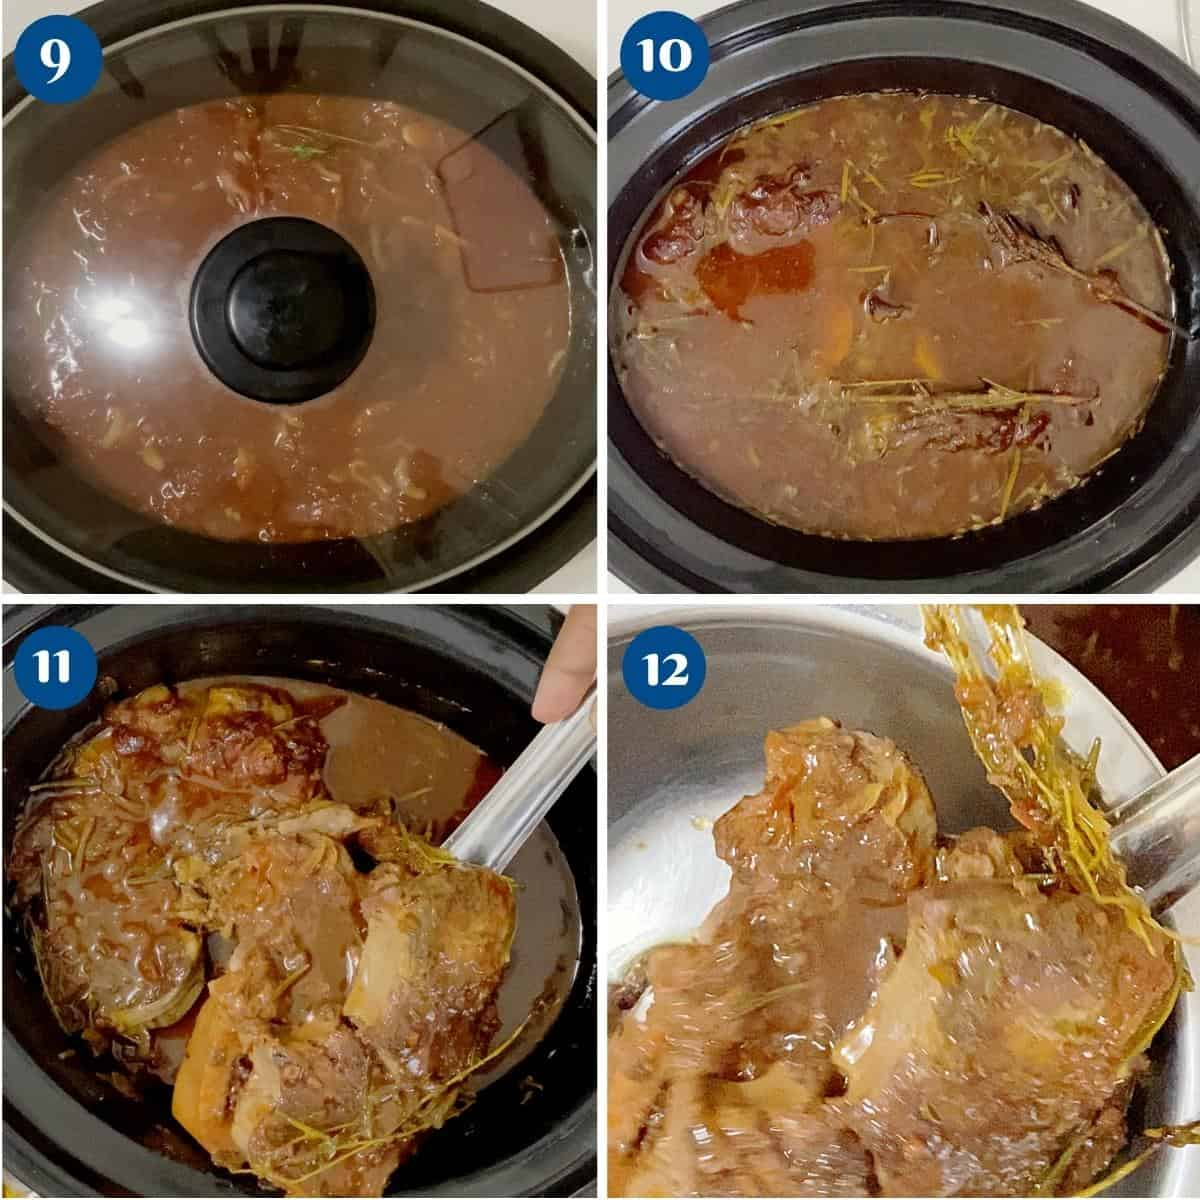 Progress pictures cooking the shanks in the slow cooker.